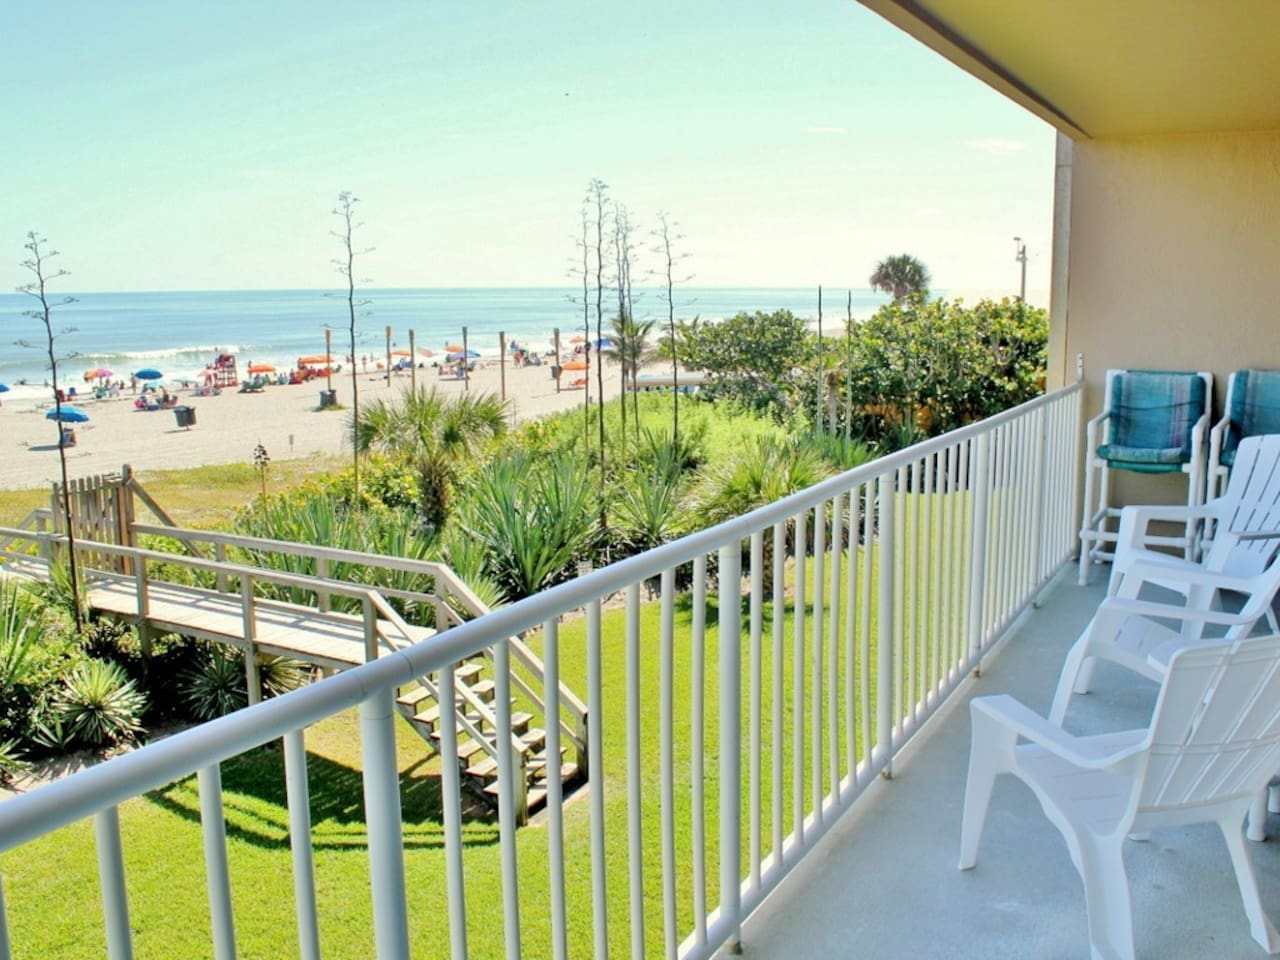 Beachfront balcony